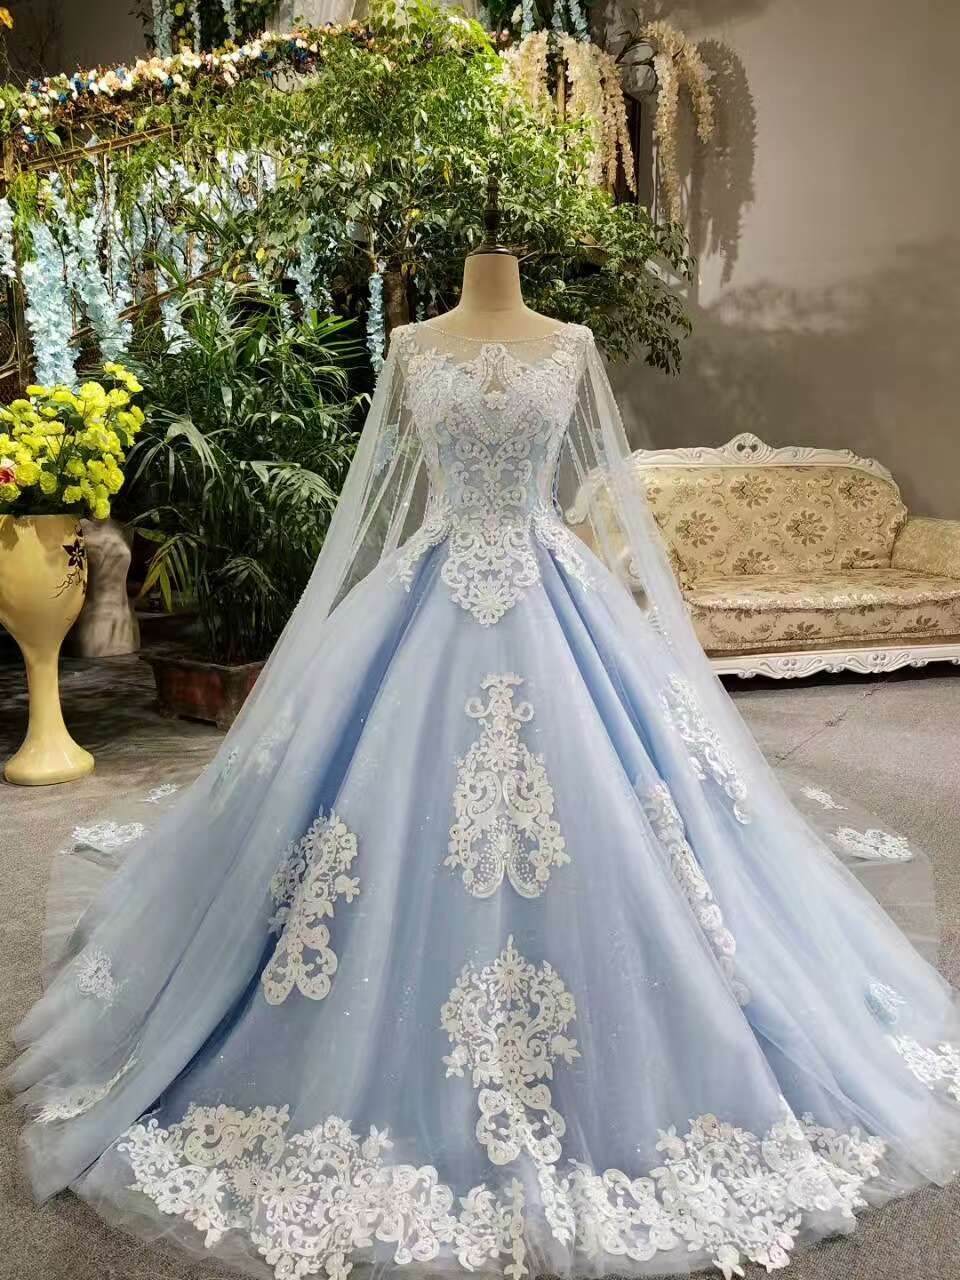 Photo of 2019 Tulle Tiffany Blue Wedding Dresses Lace Up With Appliques And Beaded Scoop Neck $ 273.14 SAPZCCX2A6 – FancyEveningDresses.com